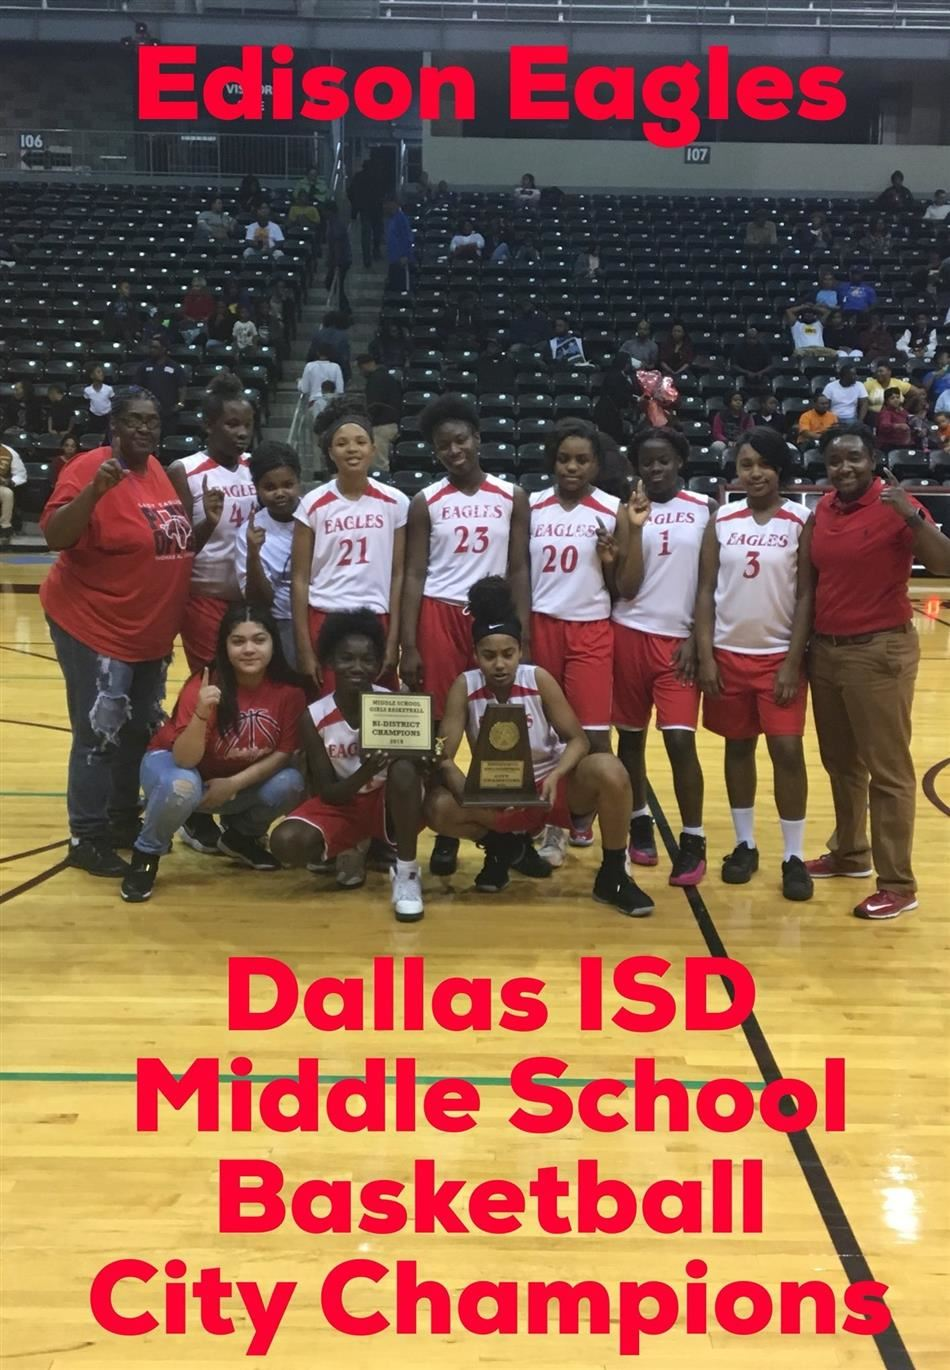 Edison Girls / OW Holmes Boys Win Middle School Basketball City Championships